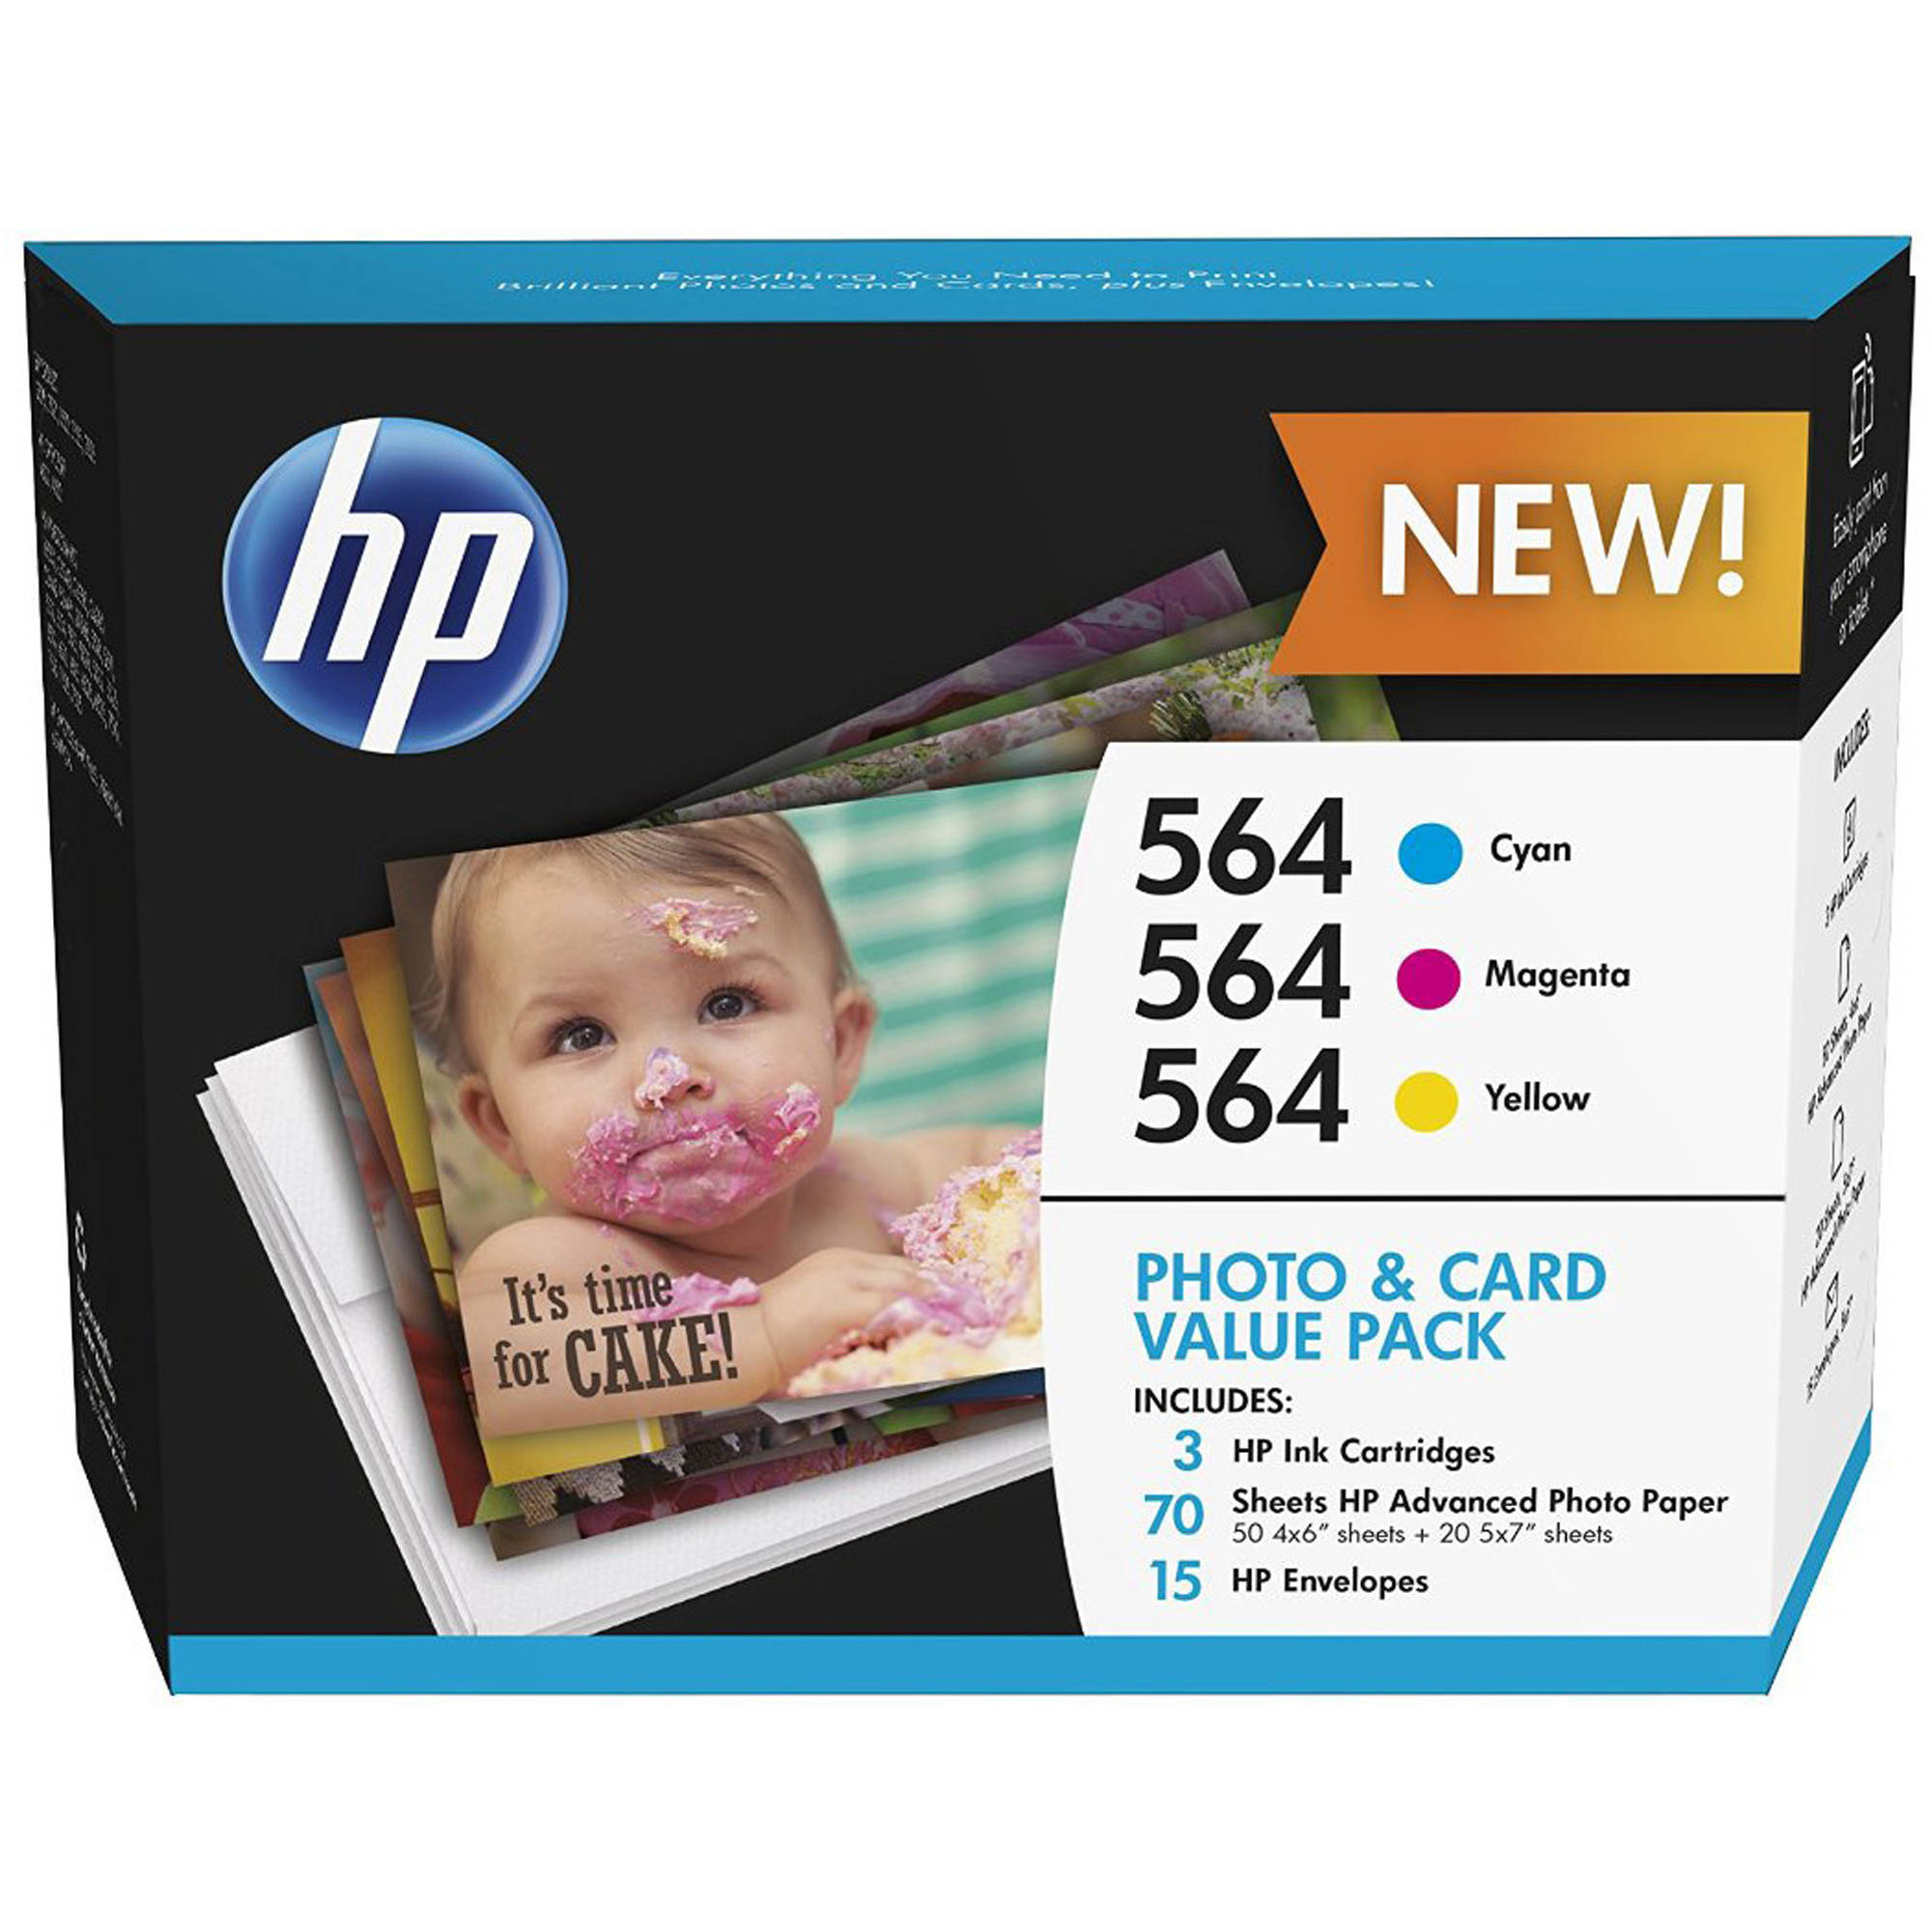 HP 564 Cyan/Magenta/Yellow Ink Cartridges with Photo Paper and Cards, 3-Pack (J2X80AN)